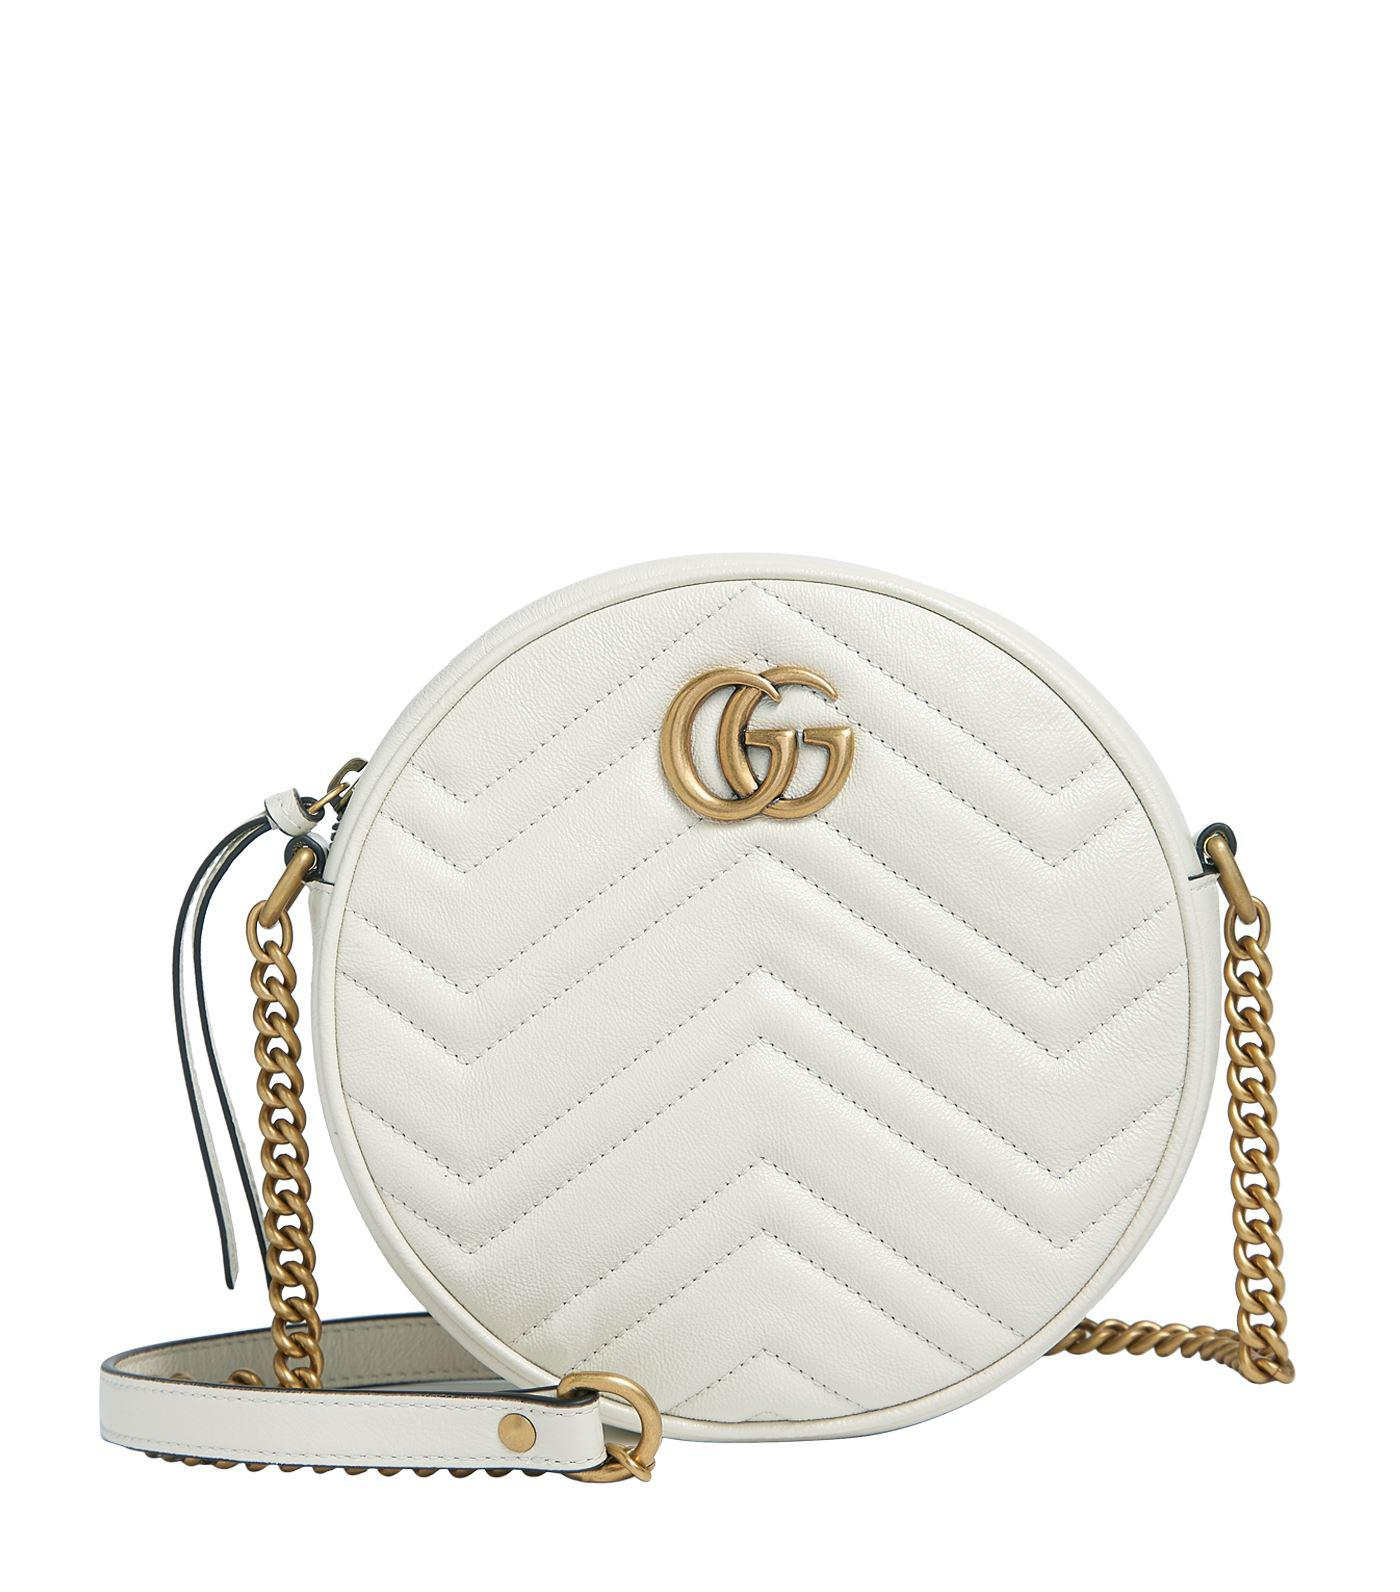 c3ae5d828a1a62 Lyst - Gucci Mini Round Marmont Matelass Shoulder Bag in White ...